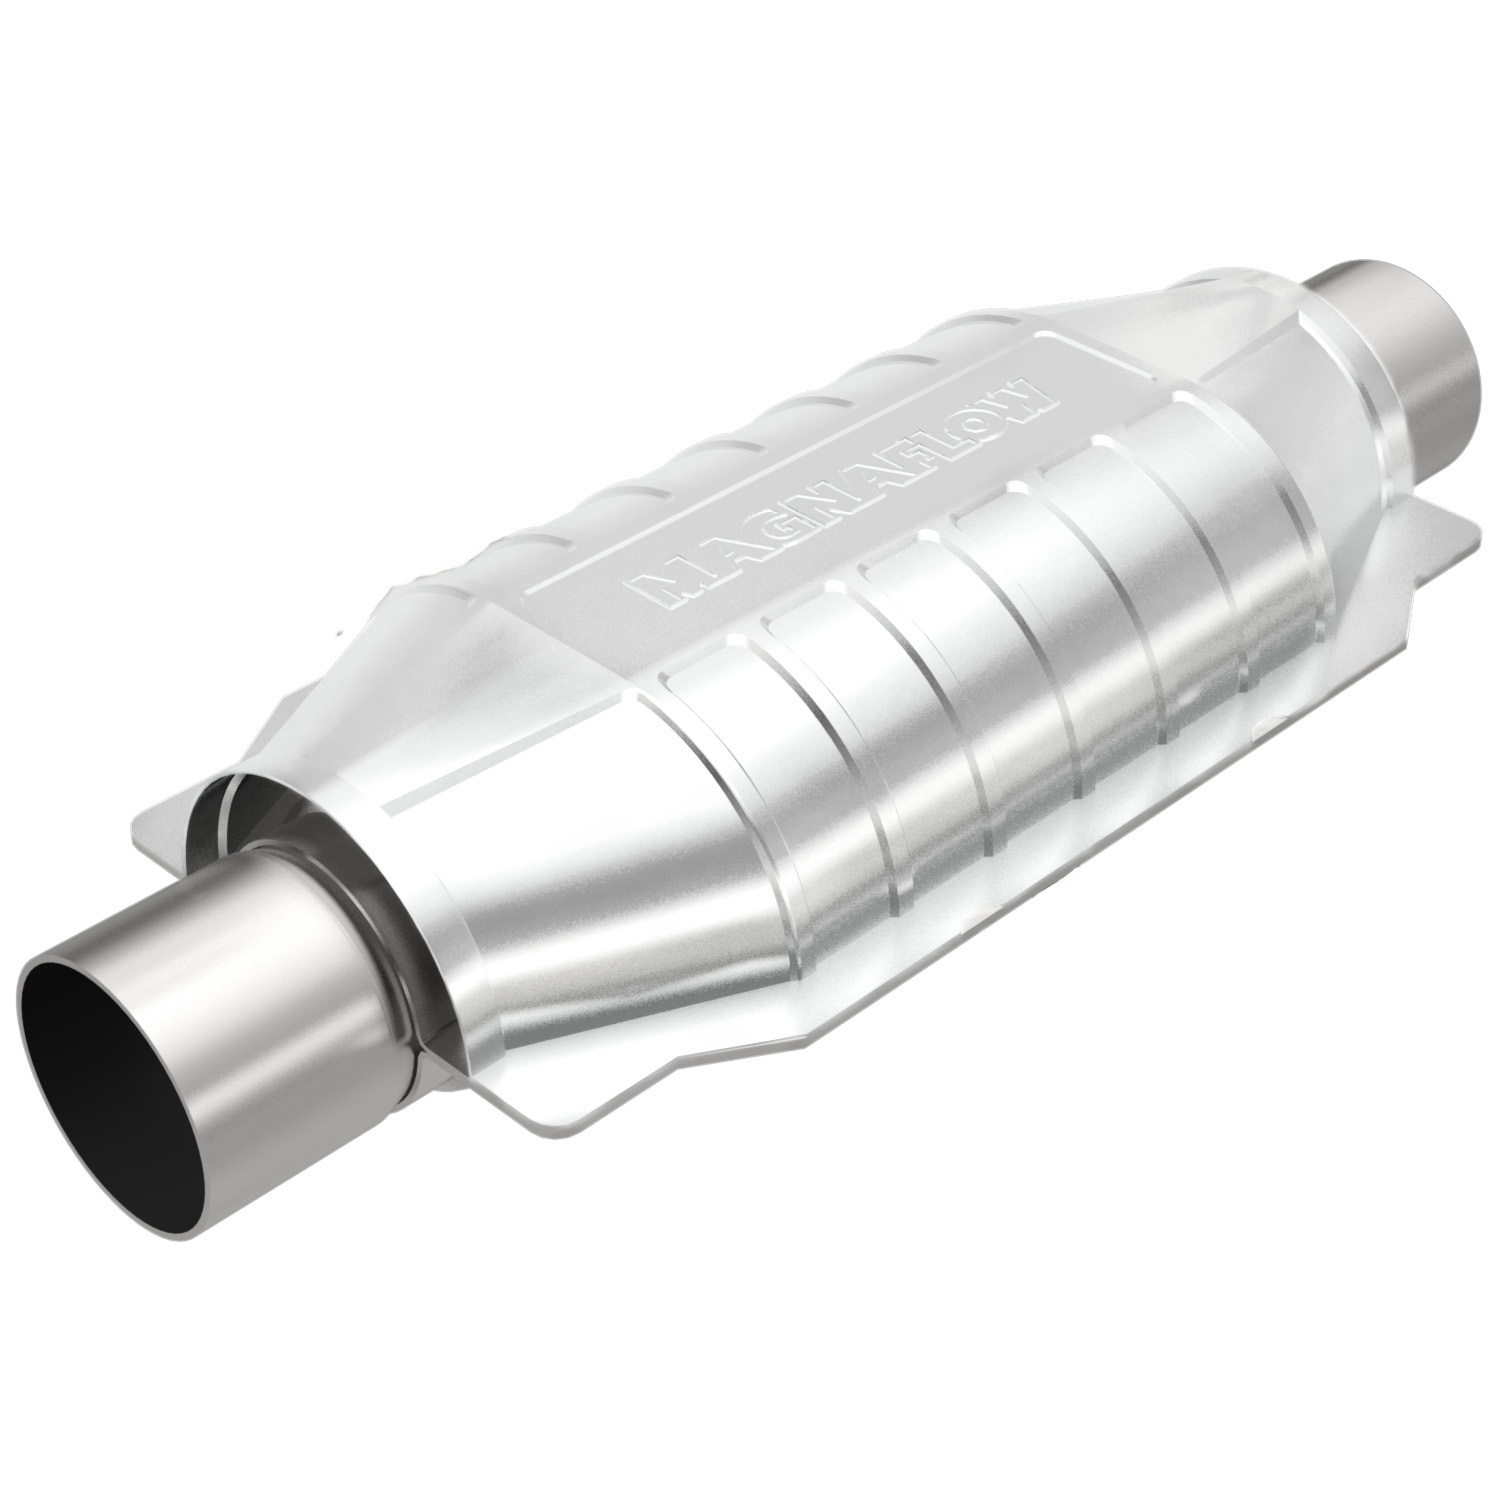 MagnaFlow California Converter 36104 Universal California Catalytic Converter at Sears.com